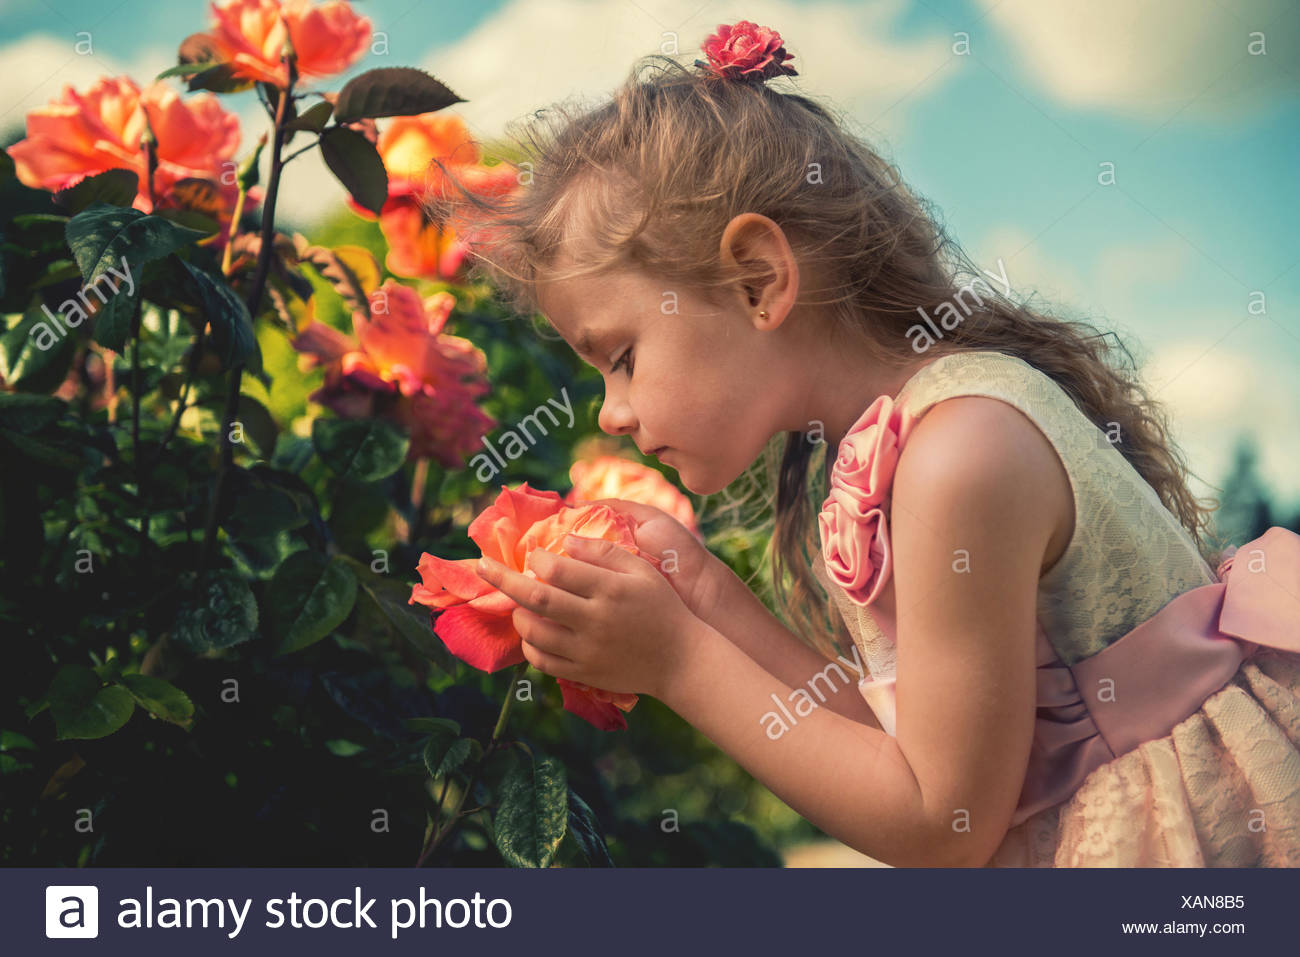 Girl (4-5) smelling flower - Stock Image